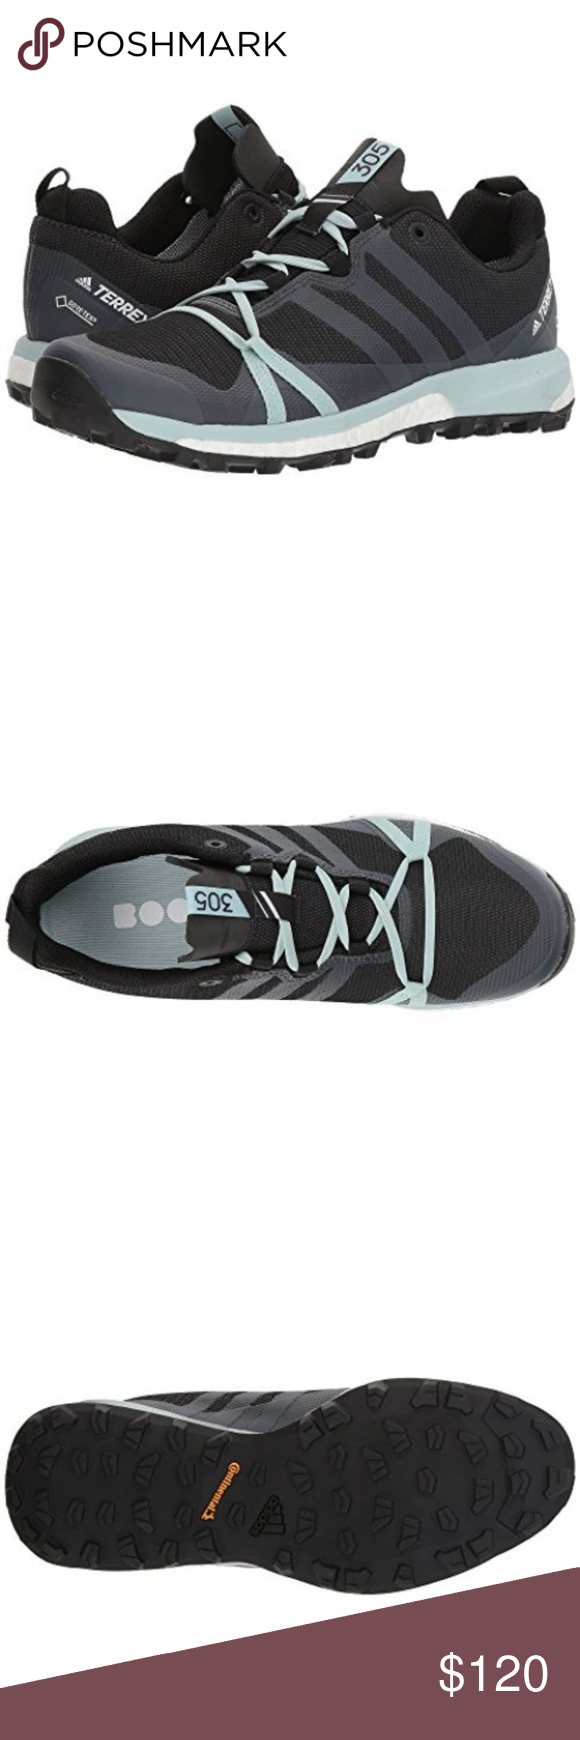 Adidas Outdoor Terrex Agravic GTX Trail Running 7 The adventure never has  to end when you fly light and swiftly over the path in the a… 652955e85